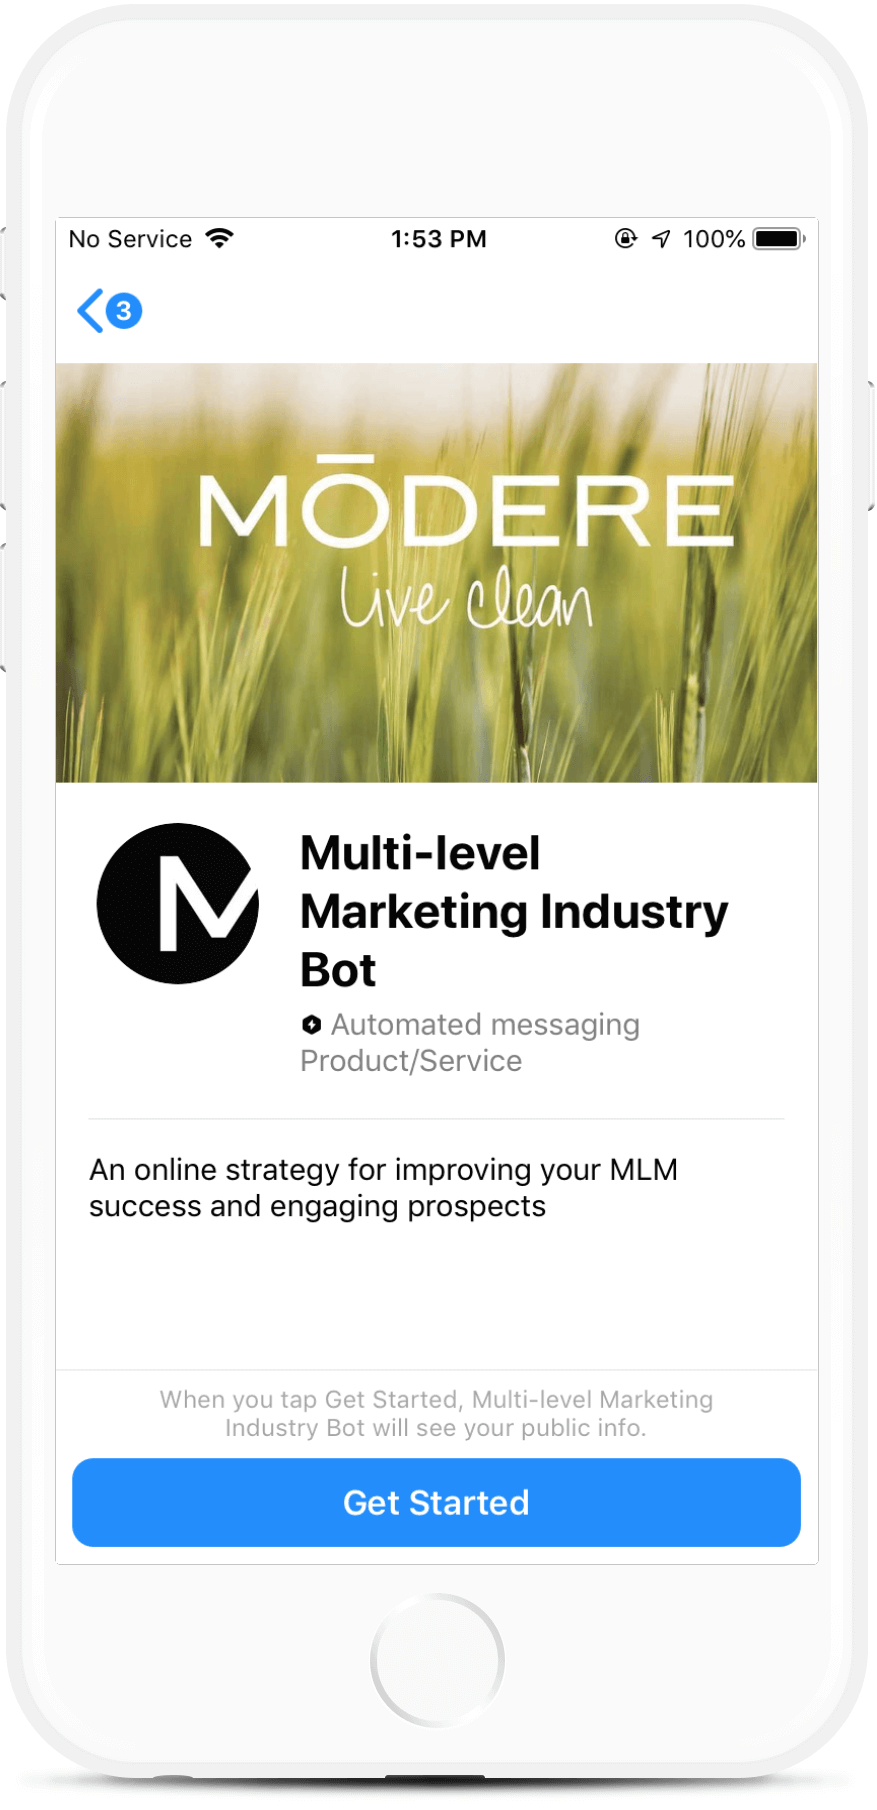 Multi-Level Marketing Industry Bot